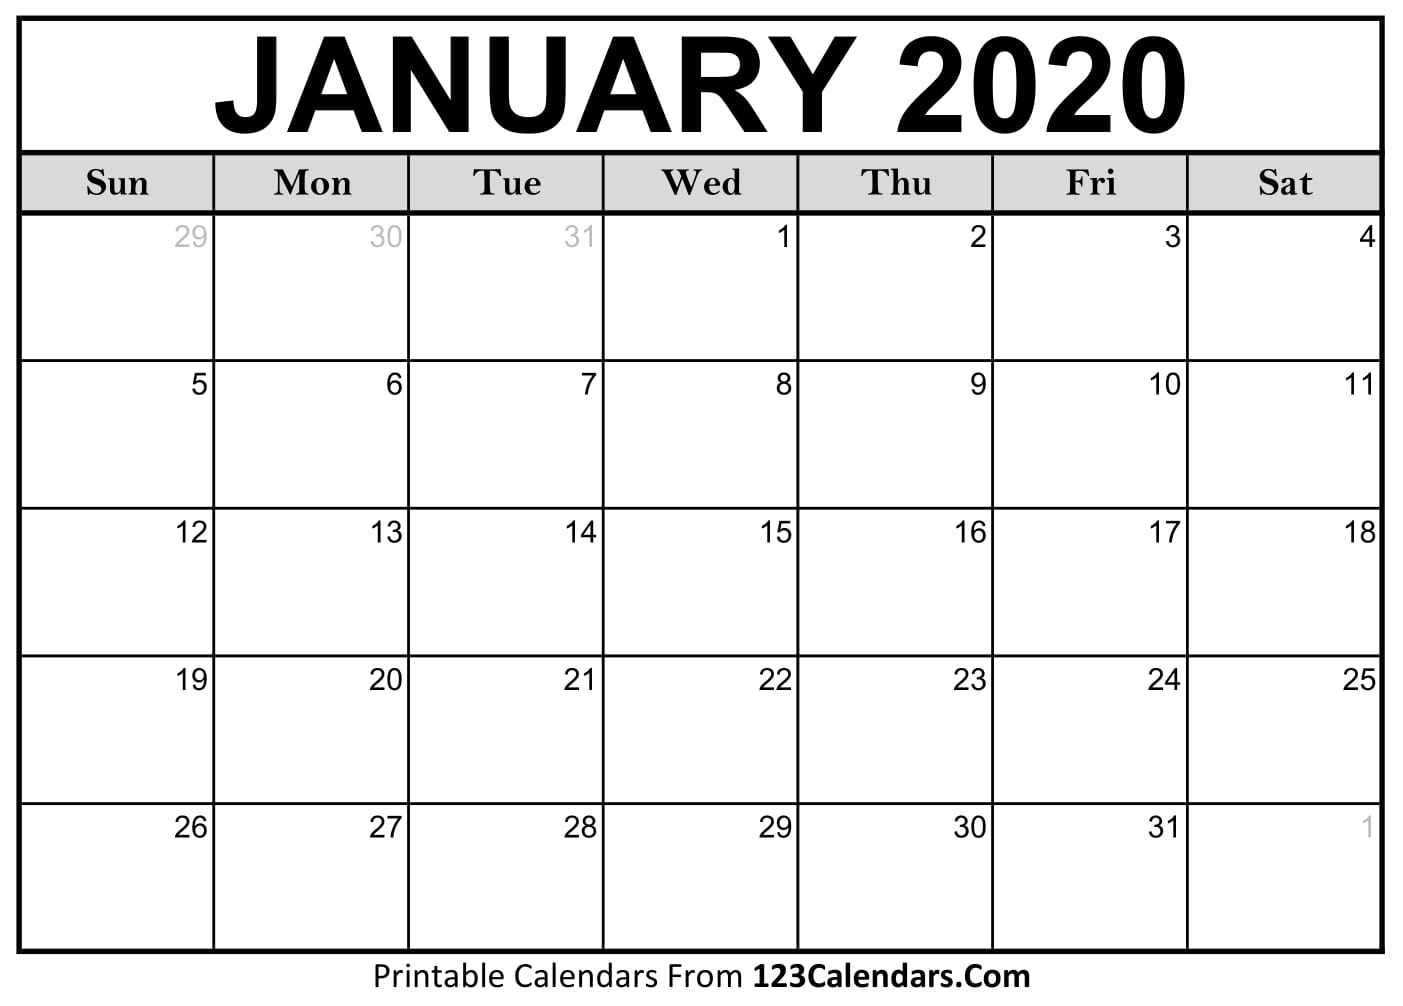 January 2020 Printable Calendar | 123Calendars pertaining to 123 Calendars January 2020